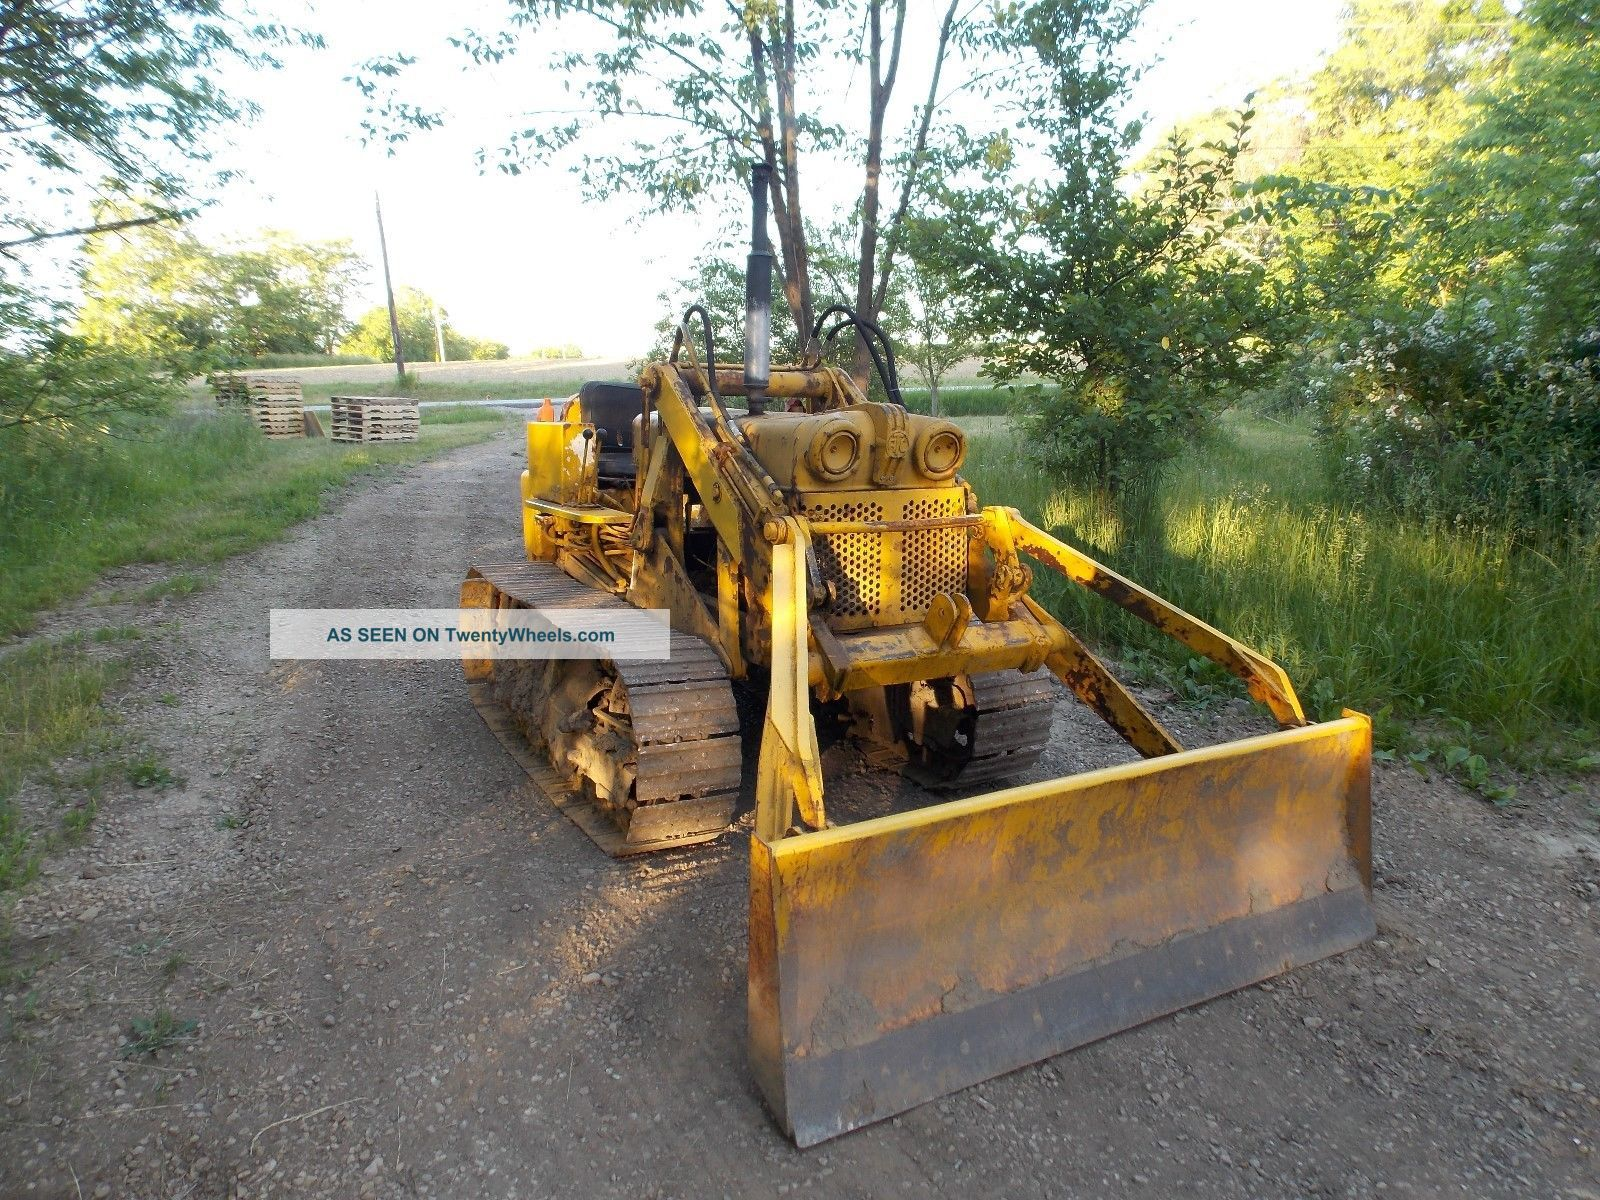 Terratrac Gt500 Dozer Crawler Dozers & Loaders photo